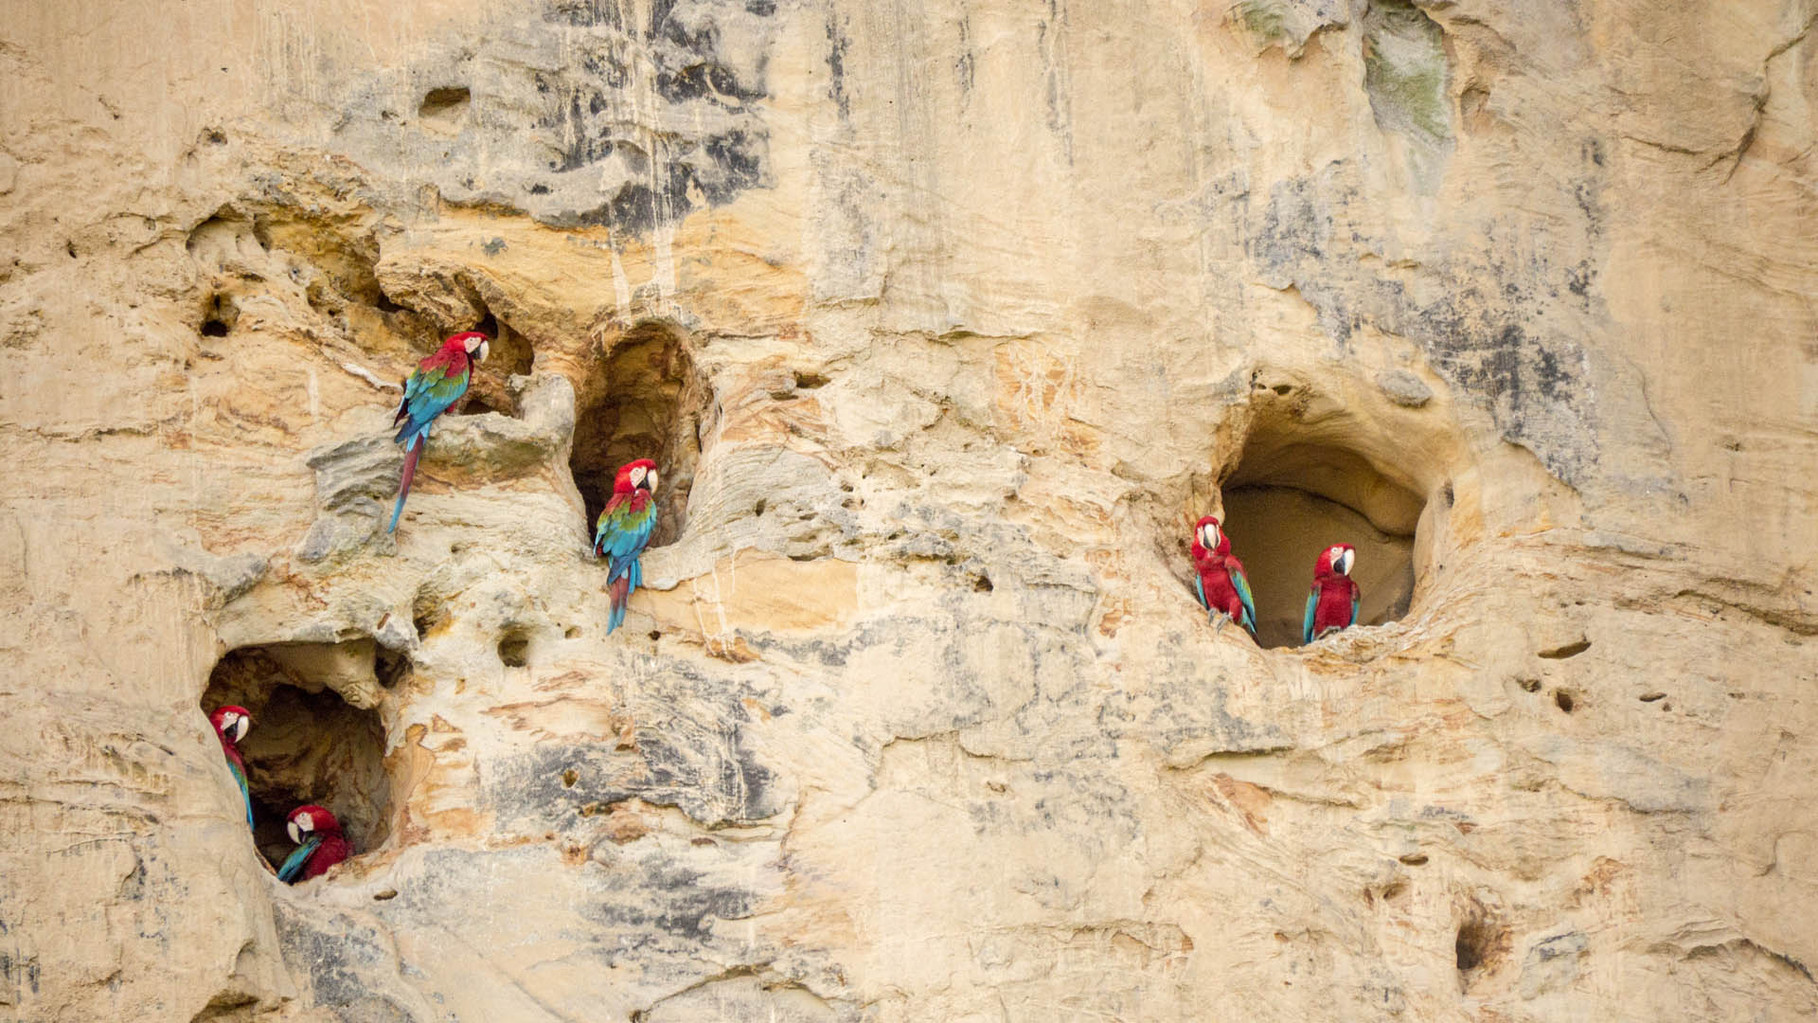 Nesting macaws at a cliff, protected from most predators, Madidi Nationalpark